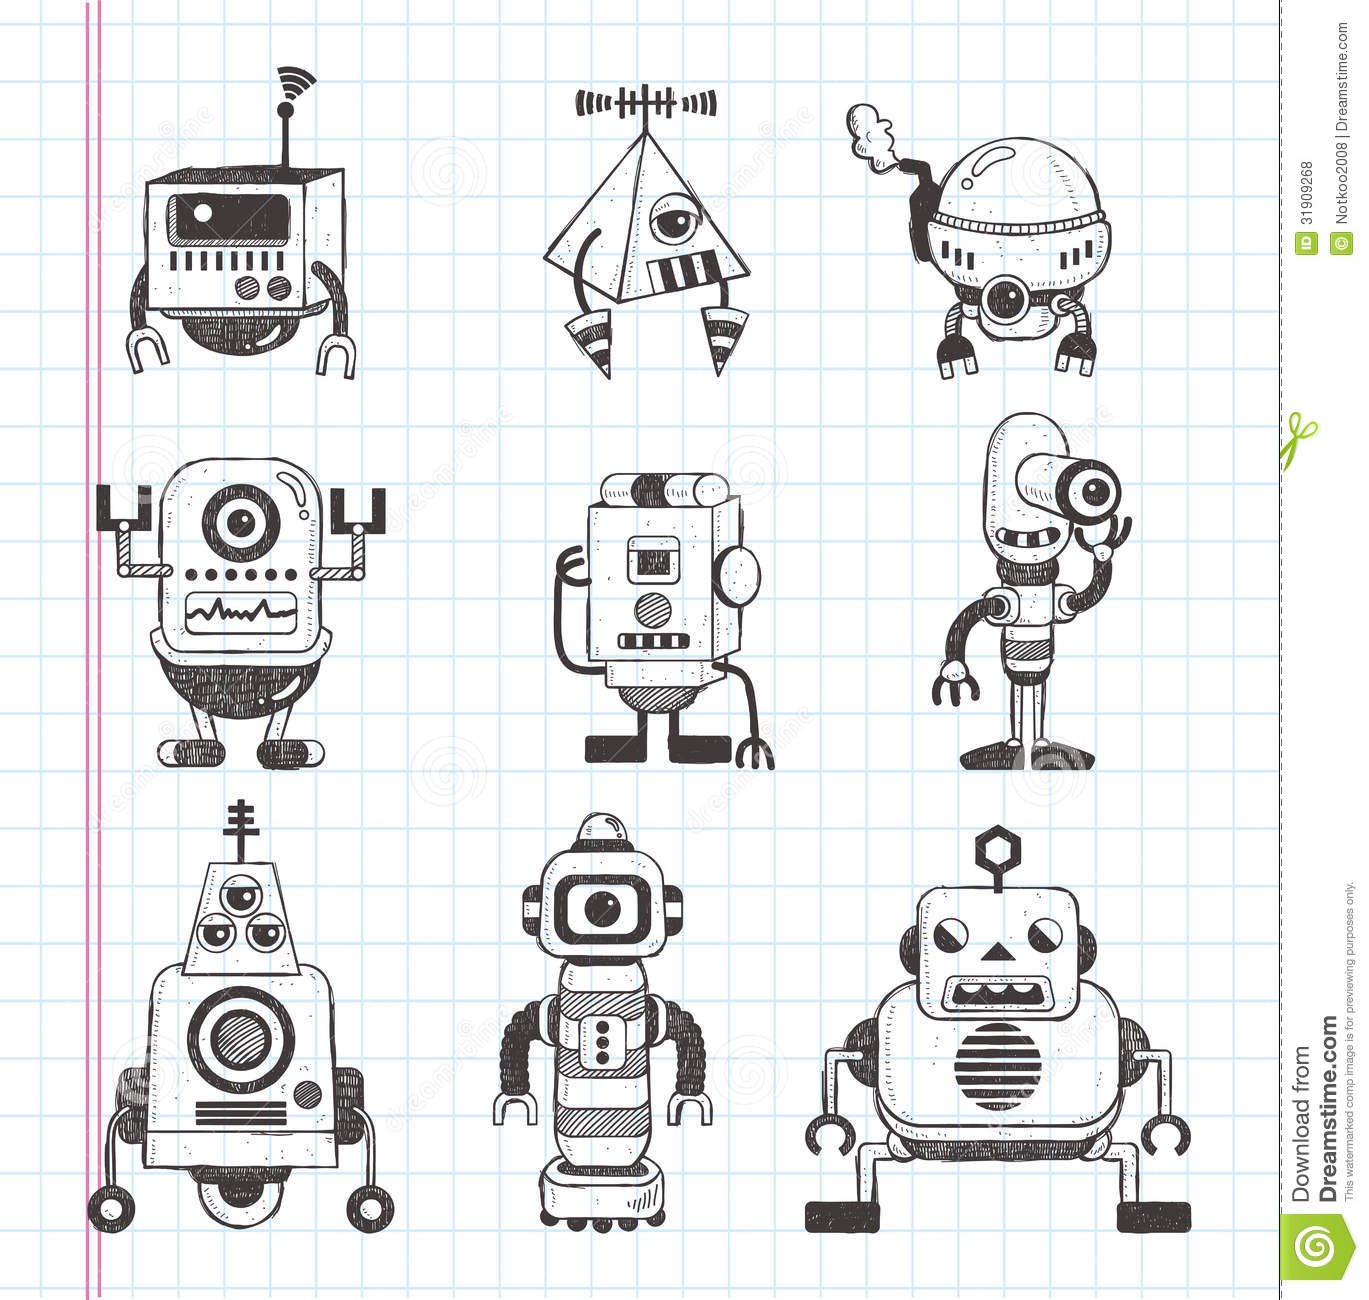 Cartoonsmart Character Design Illustrator : Set of doodle robot icons stock vector illustration